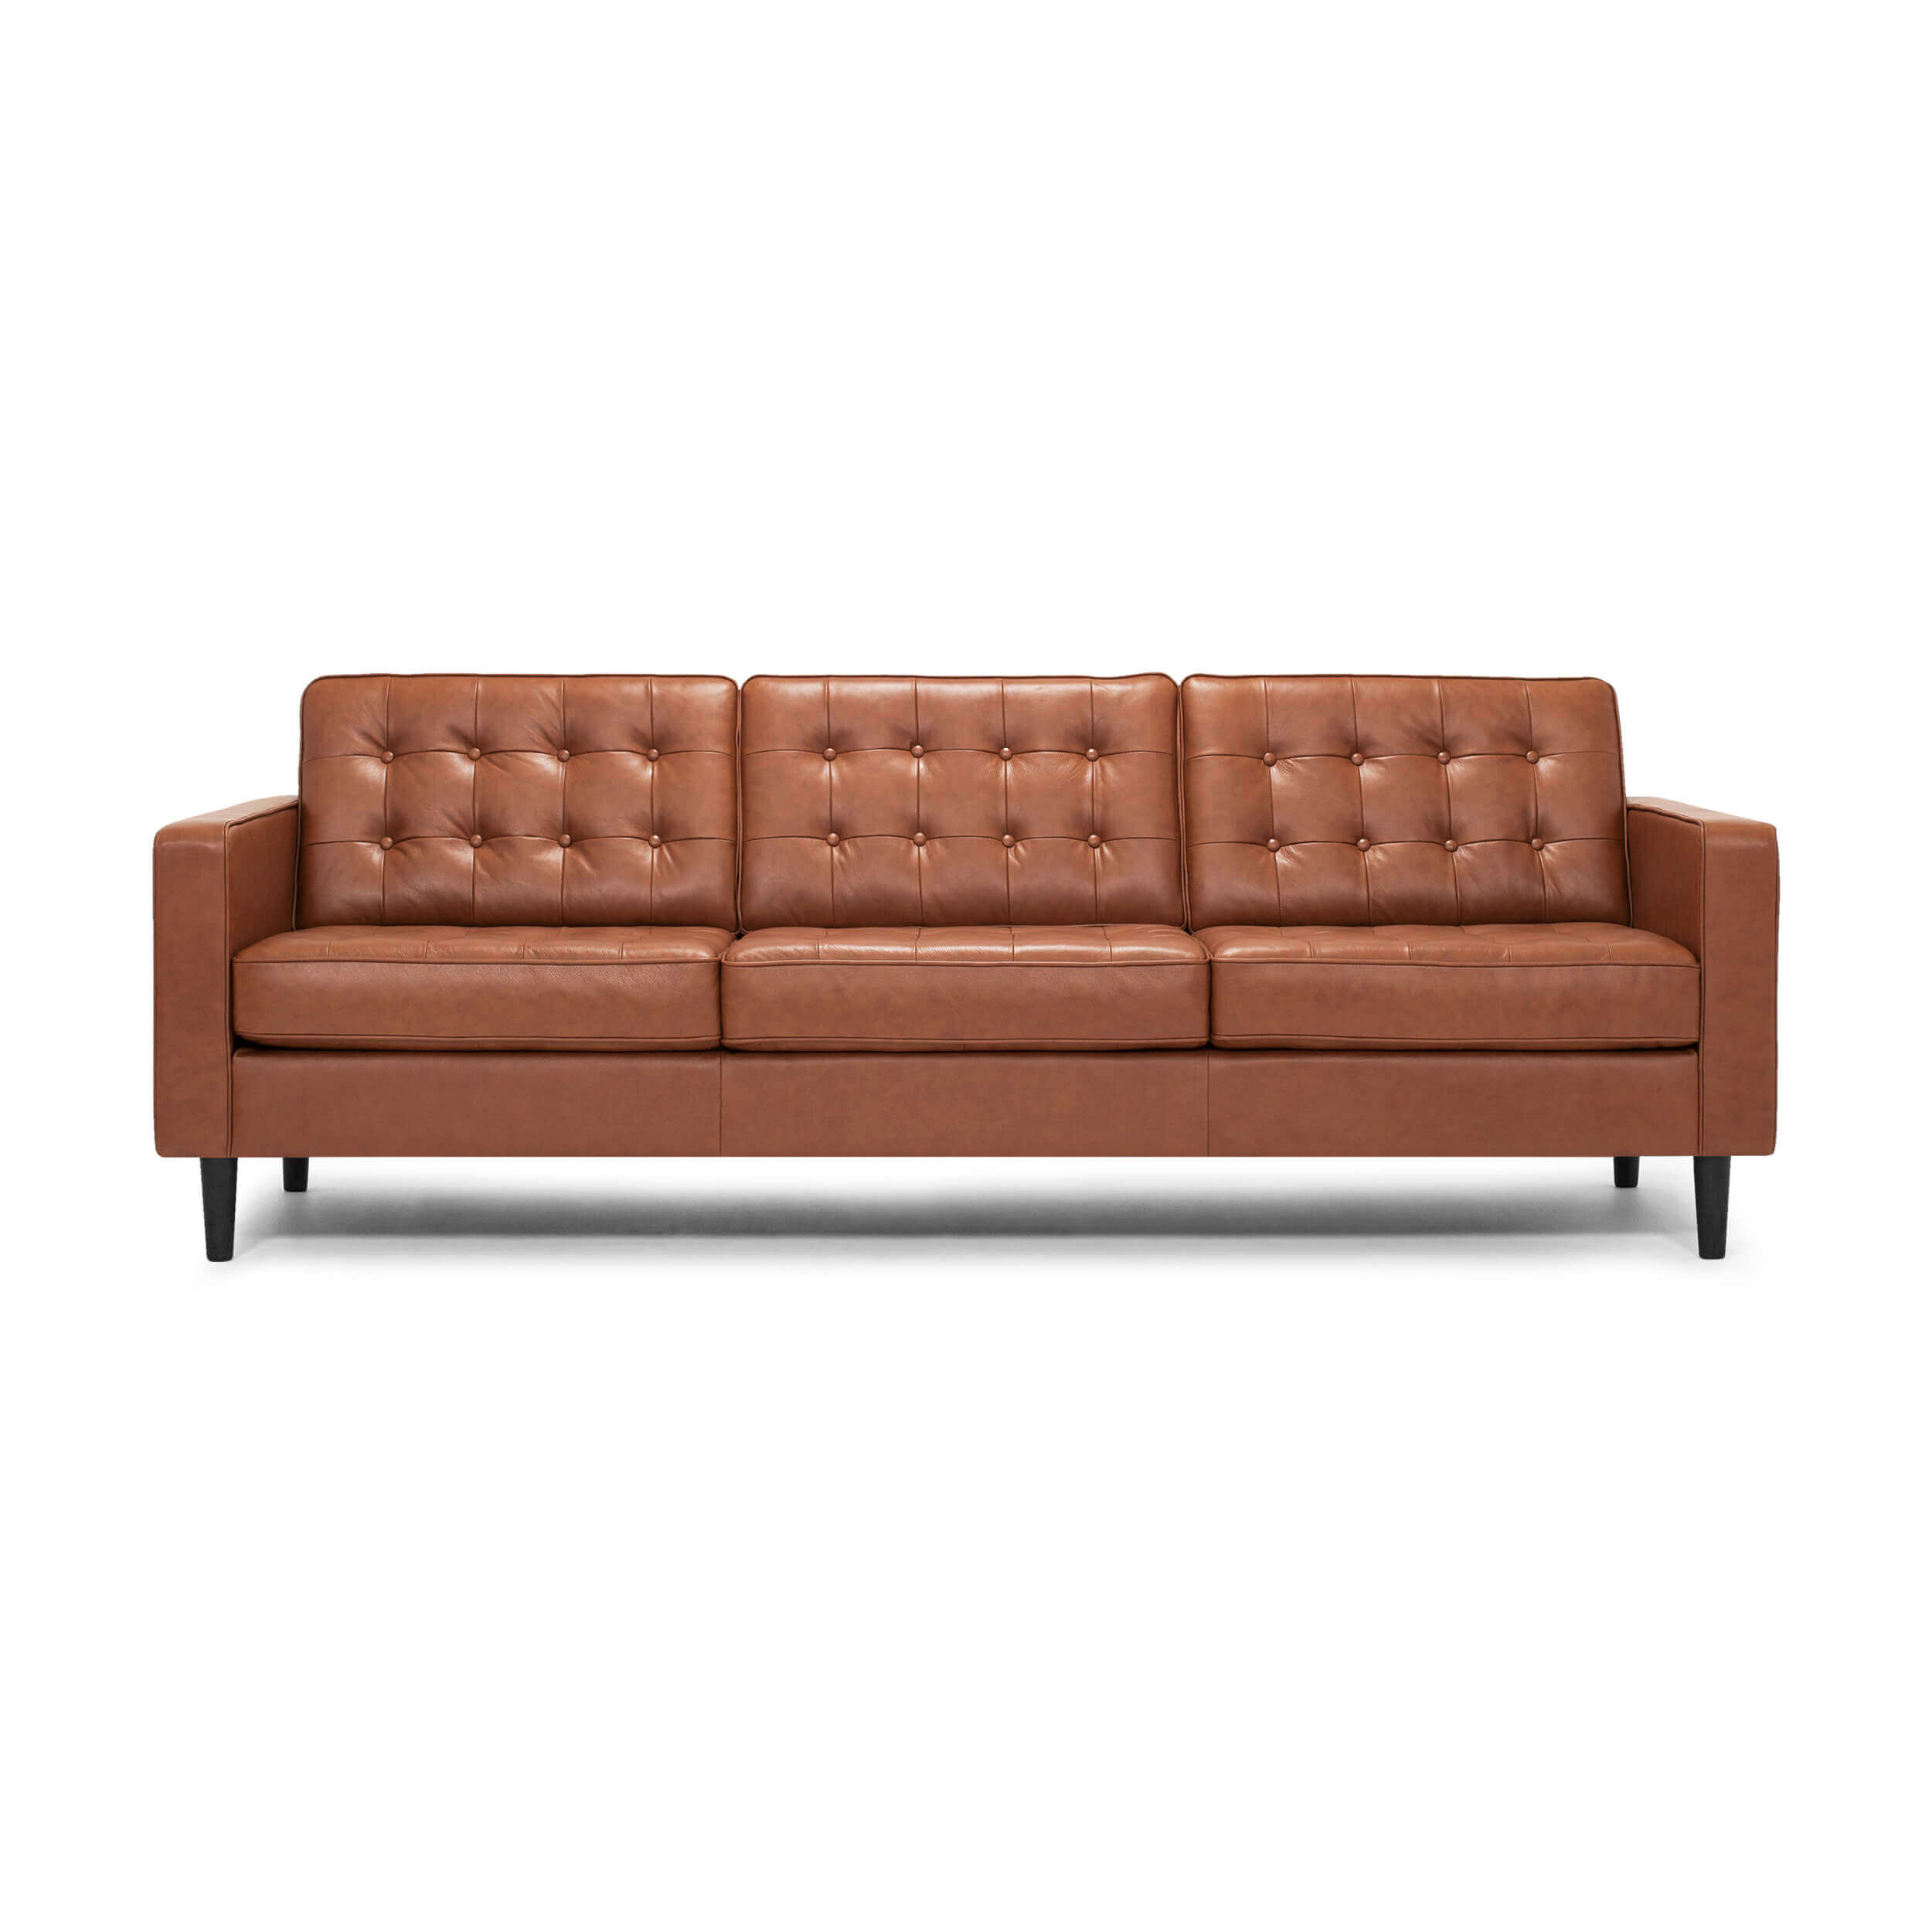 Stupendous Reverie 92 Sofa Leather Gmtry Best Dining Table And Chair Ideas Images Gmtryco